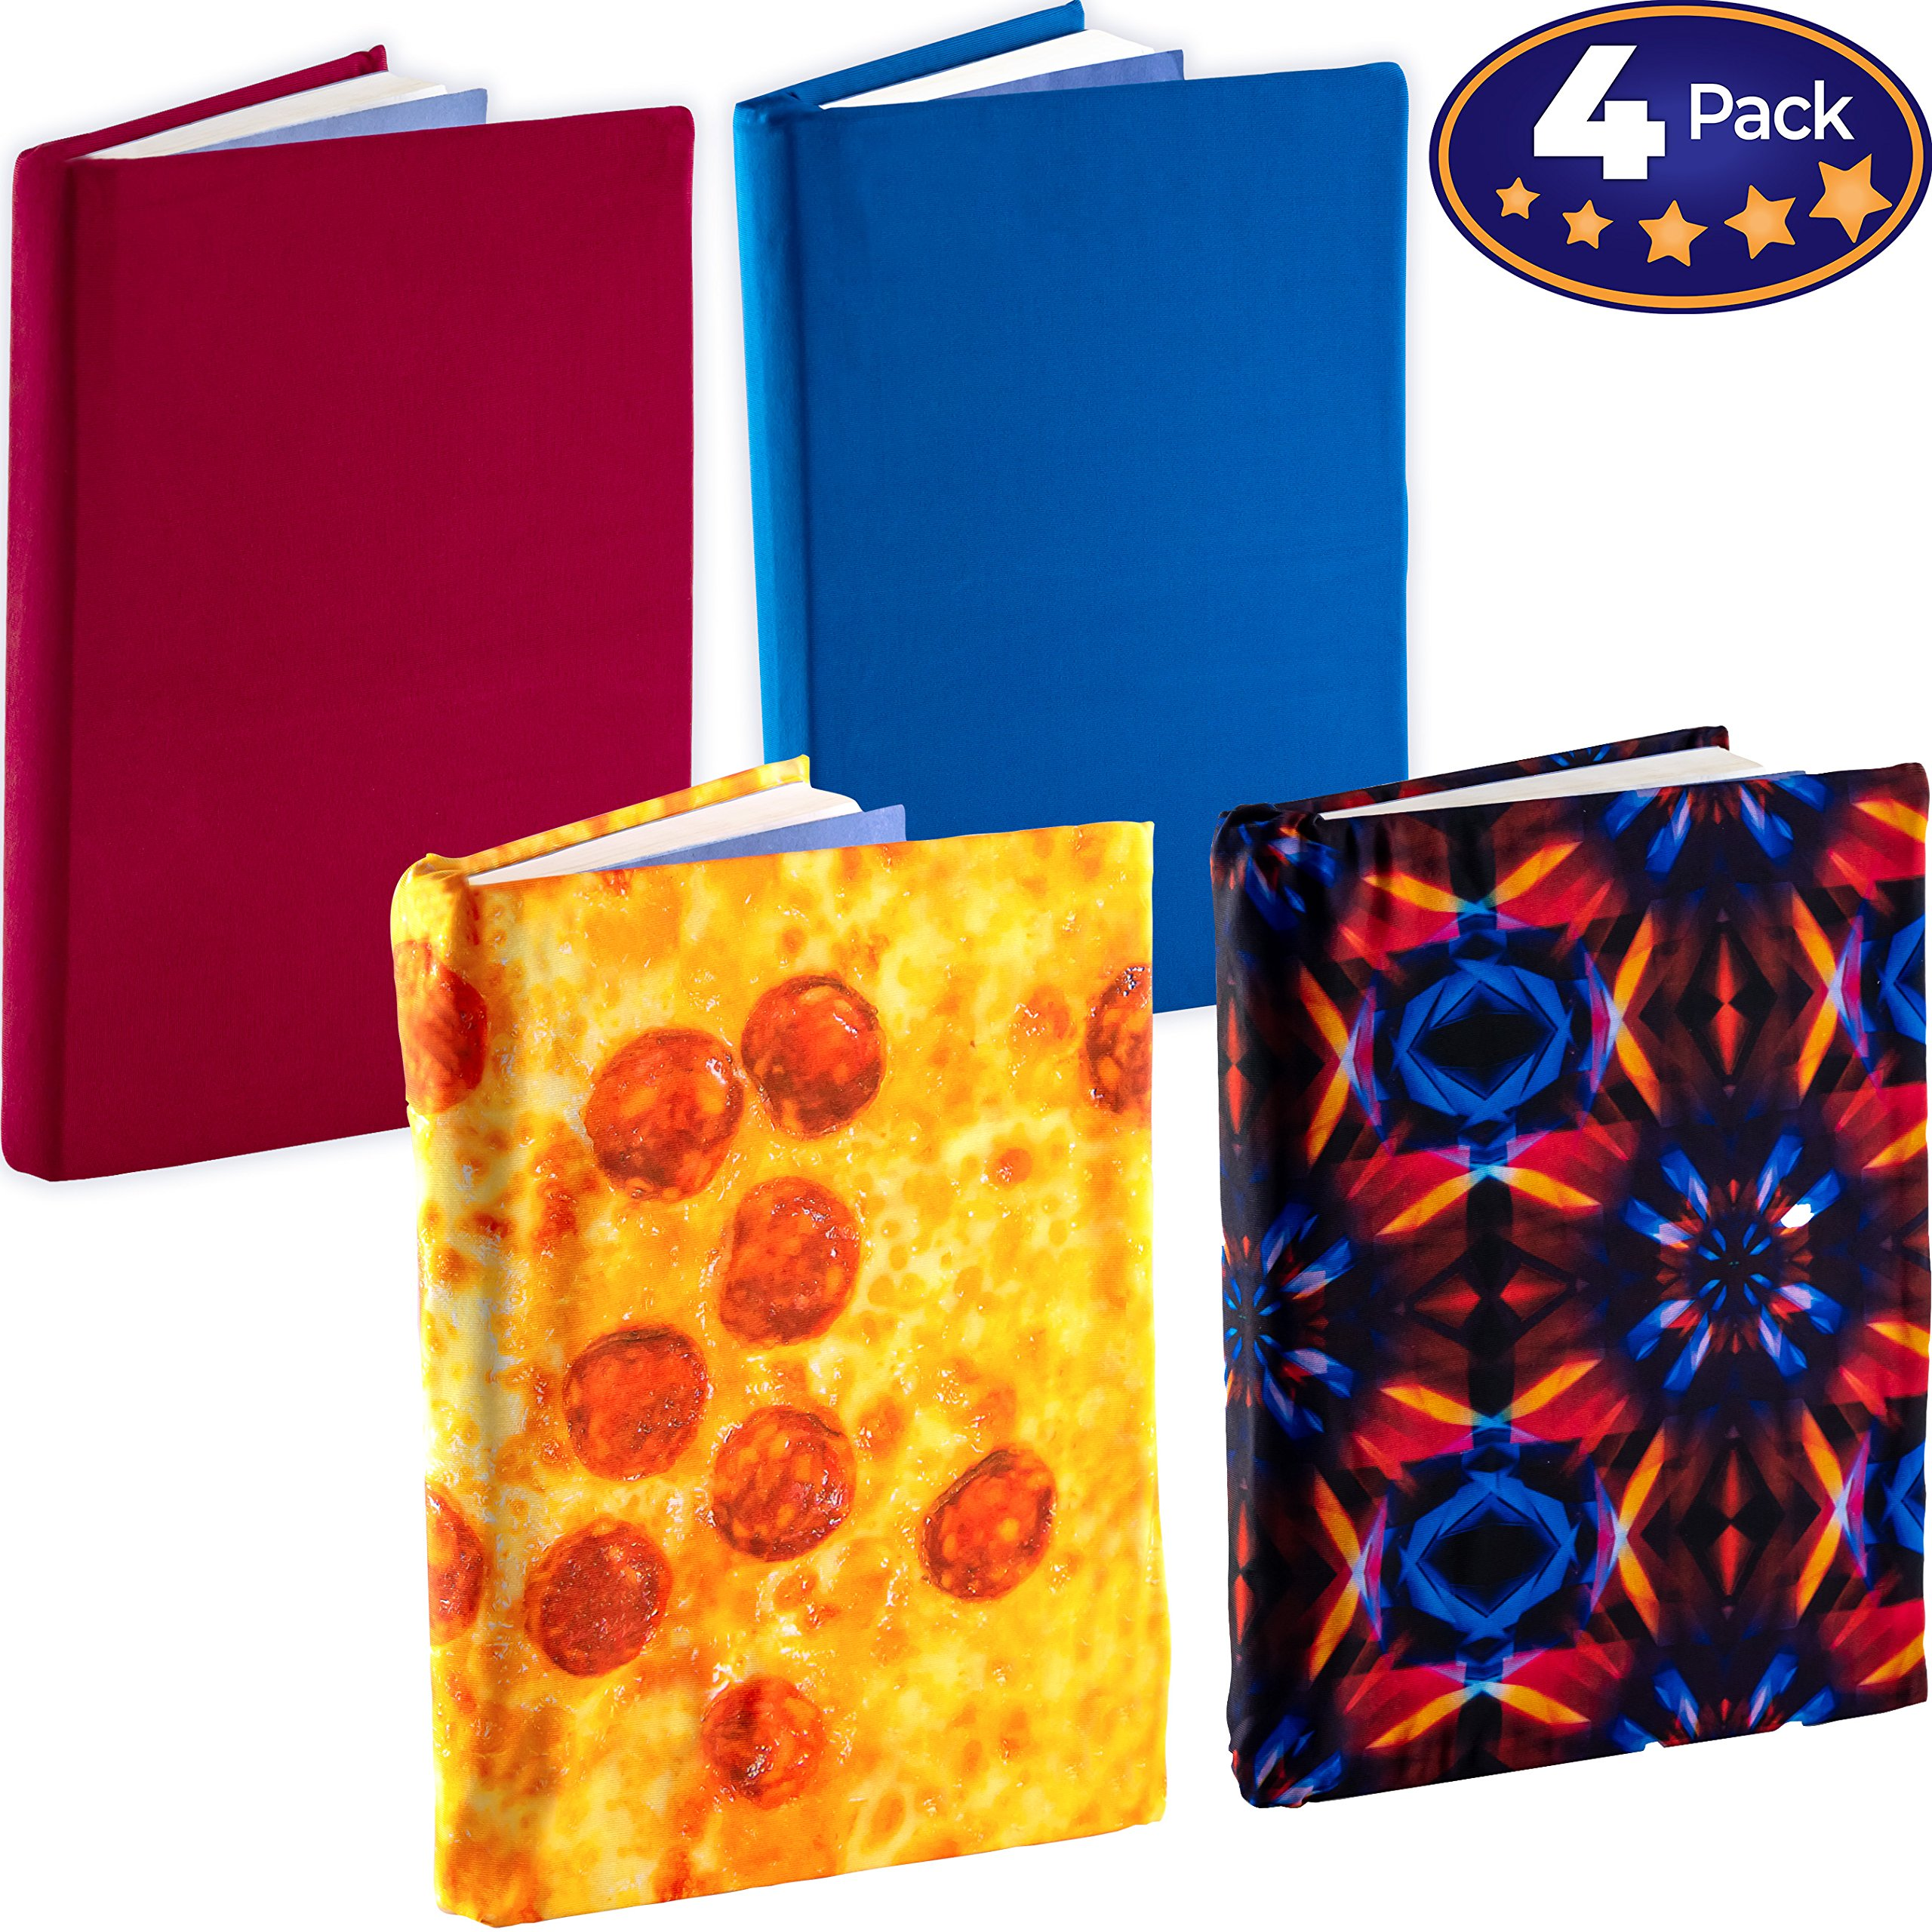 Jumbo, Stretchable Book Cover Color 4 Pack. Fits Most Hardcover Textbooks up to 9 x 11. Adhesive-Free, Nylon Fabric Protectors are A Needed School Supply for Students. (Neutral 2)